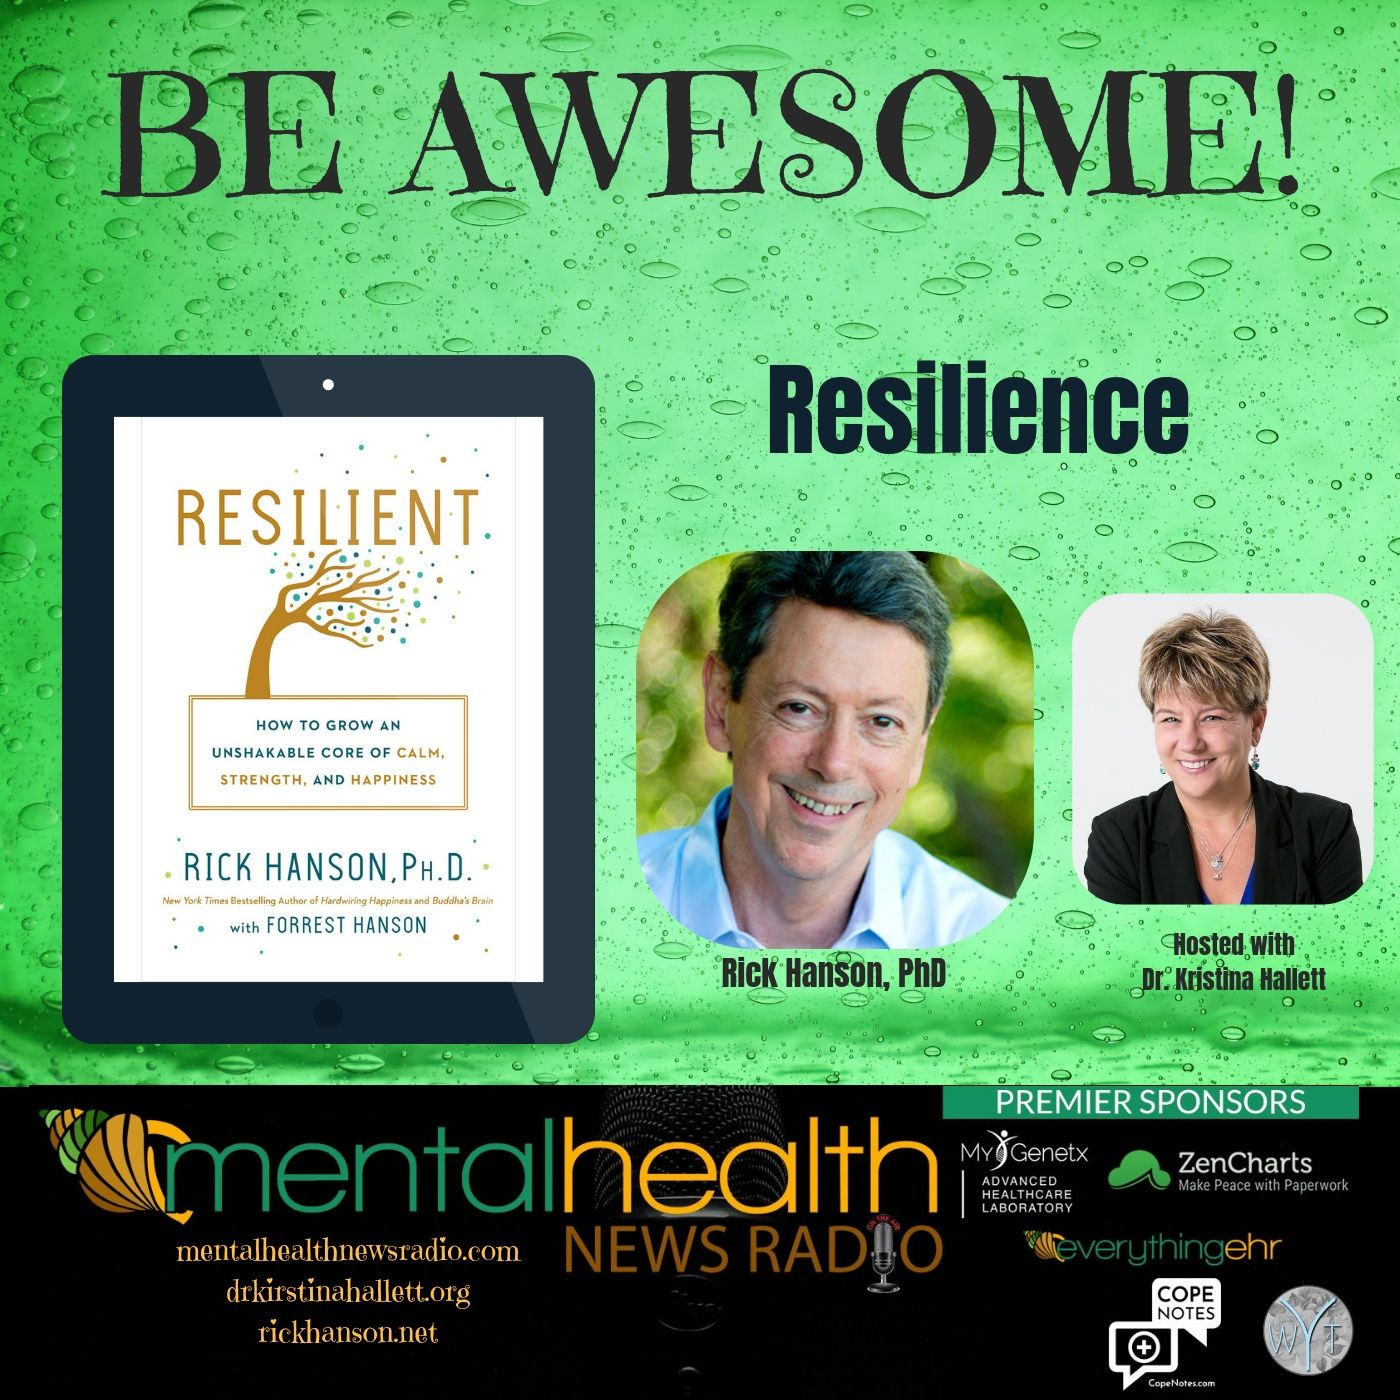 Mental Health News Radio - Be Awesome: Resilience with Rick Hanson, PhD